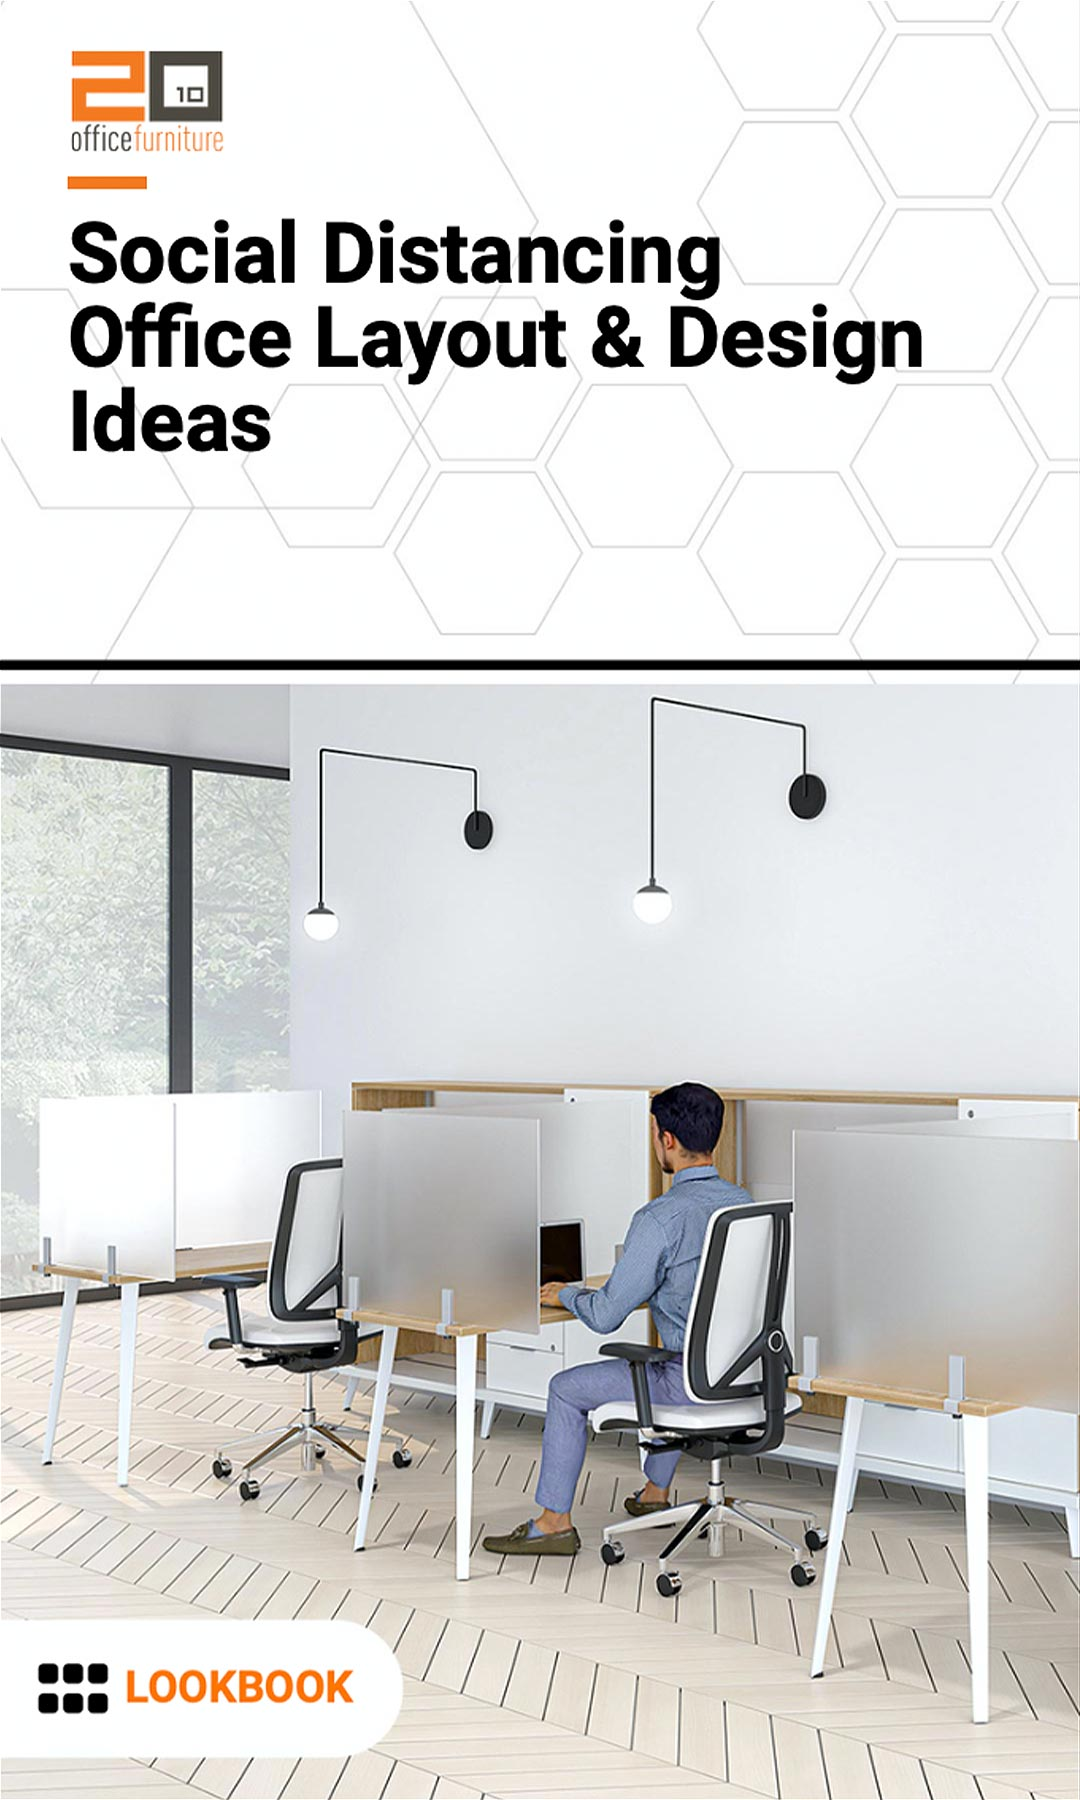 Office Furniture Stories Social Distancing Office